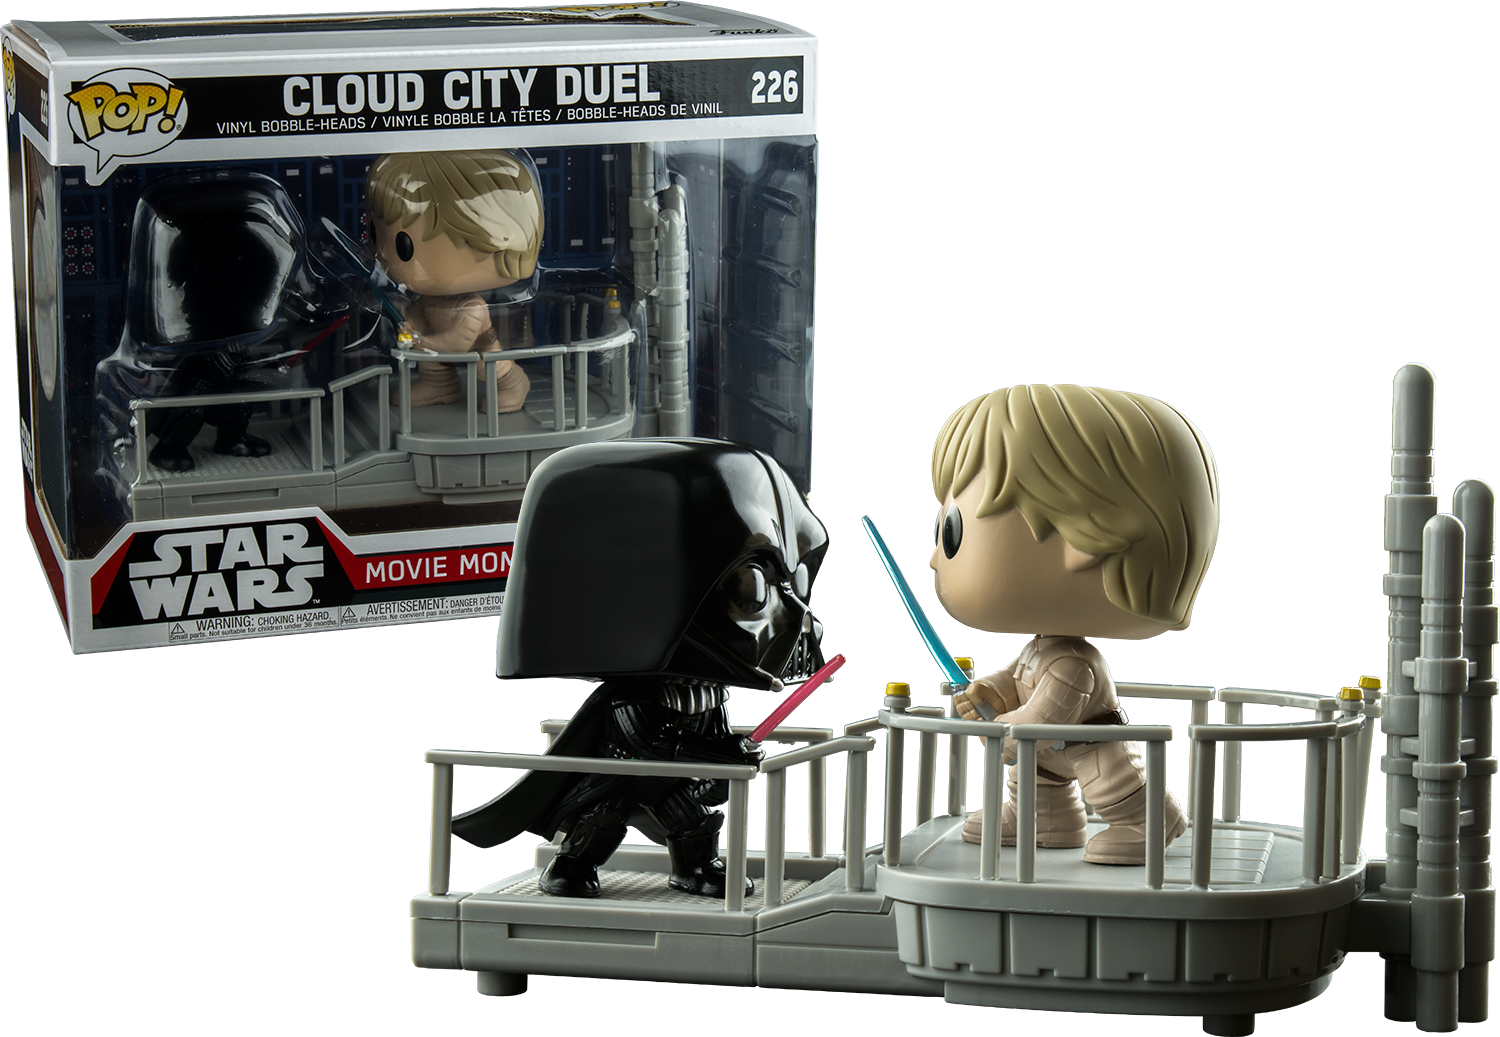 Star Wars Darth Vader And Luke Skywalker Cloud City Duel Movie Moments Funko Pop Vinyl Figure 2 Pack Popcultch Funko Pop Star Wars Star Wars Movie Pop Star